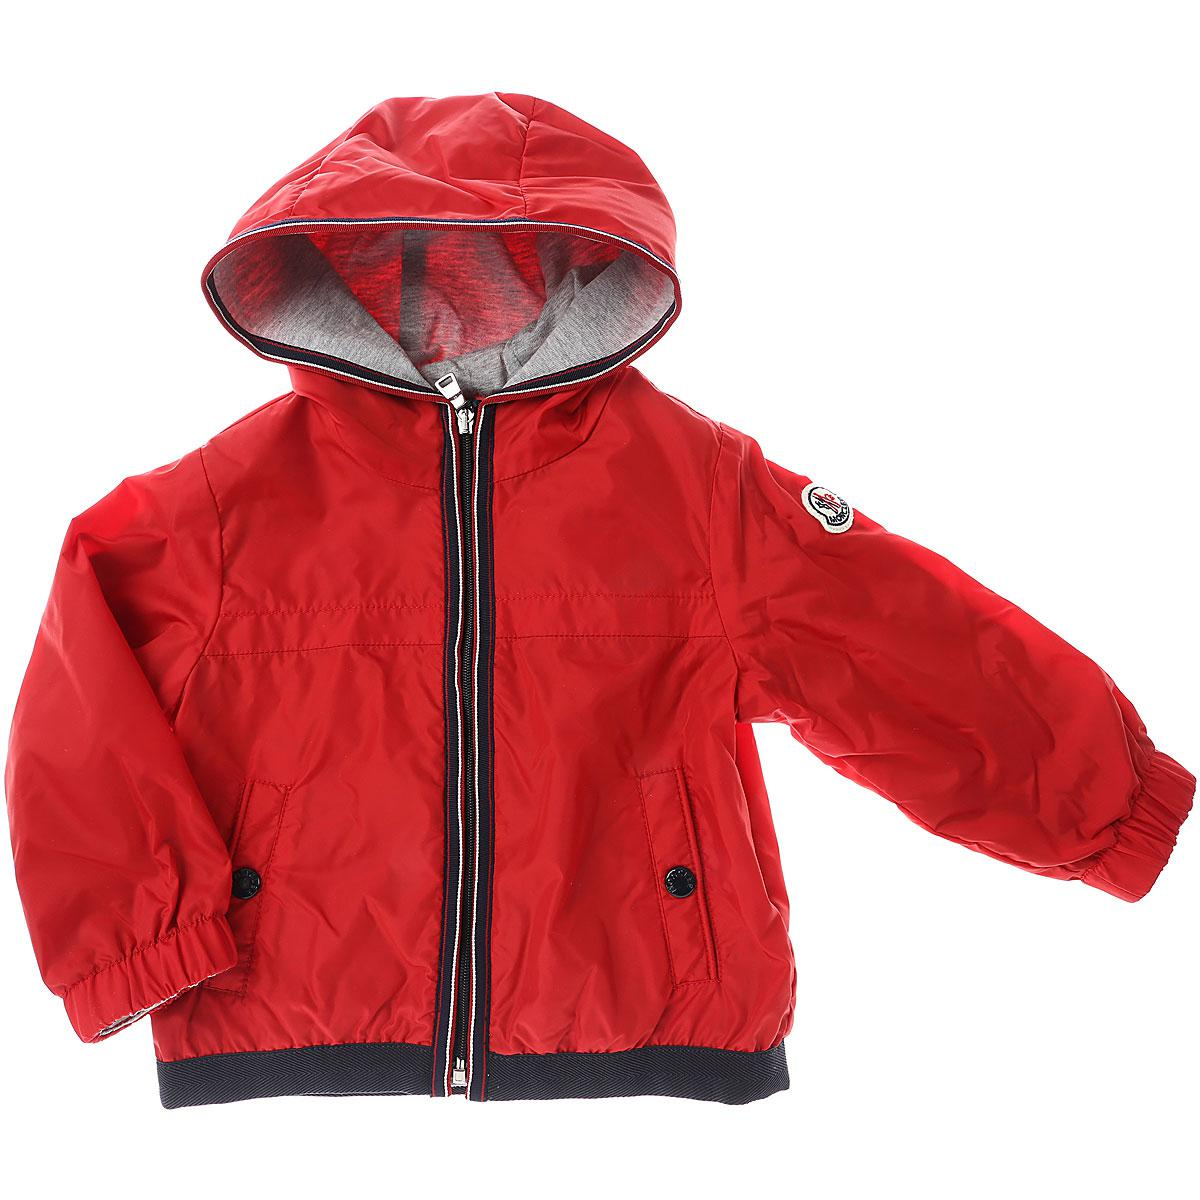 0a3242776 sweden moncler jacket baby red ed575 649e8